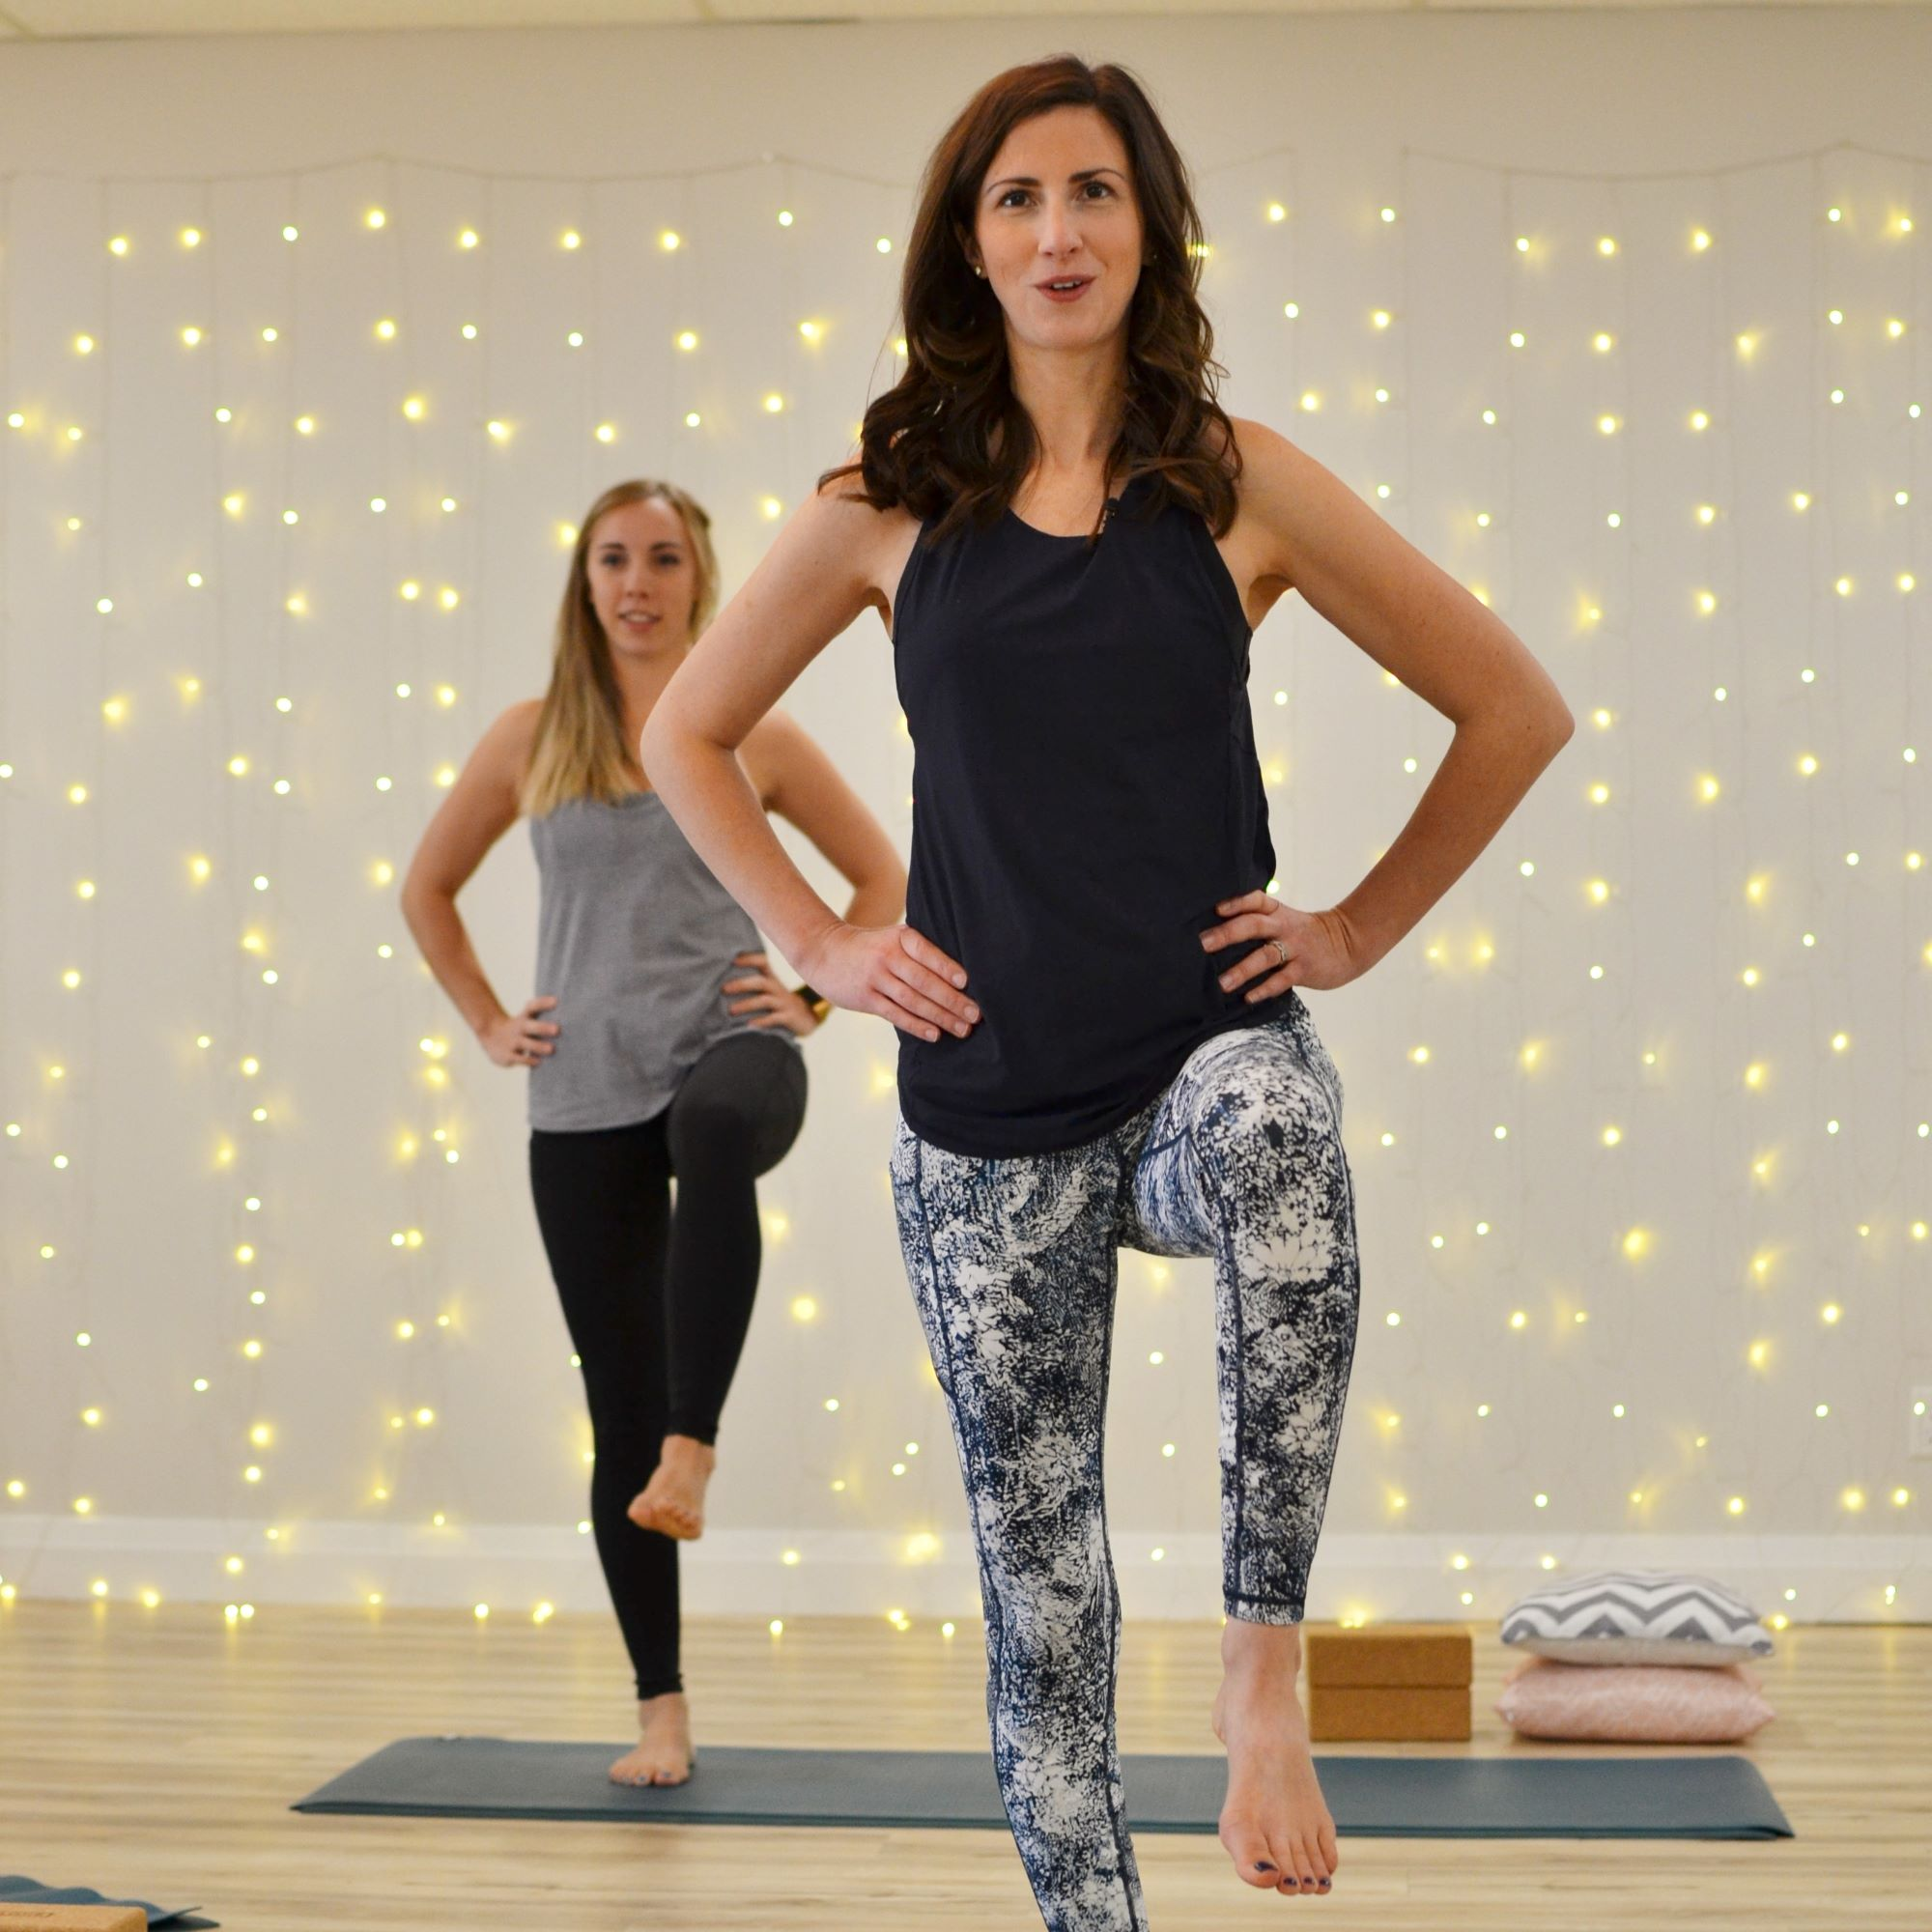 stephanie reynolds standing on yoga mat with hands on hips and one knee lifted